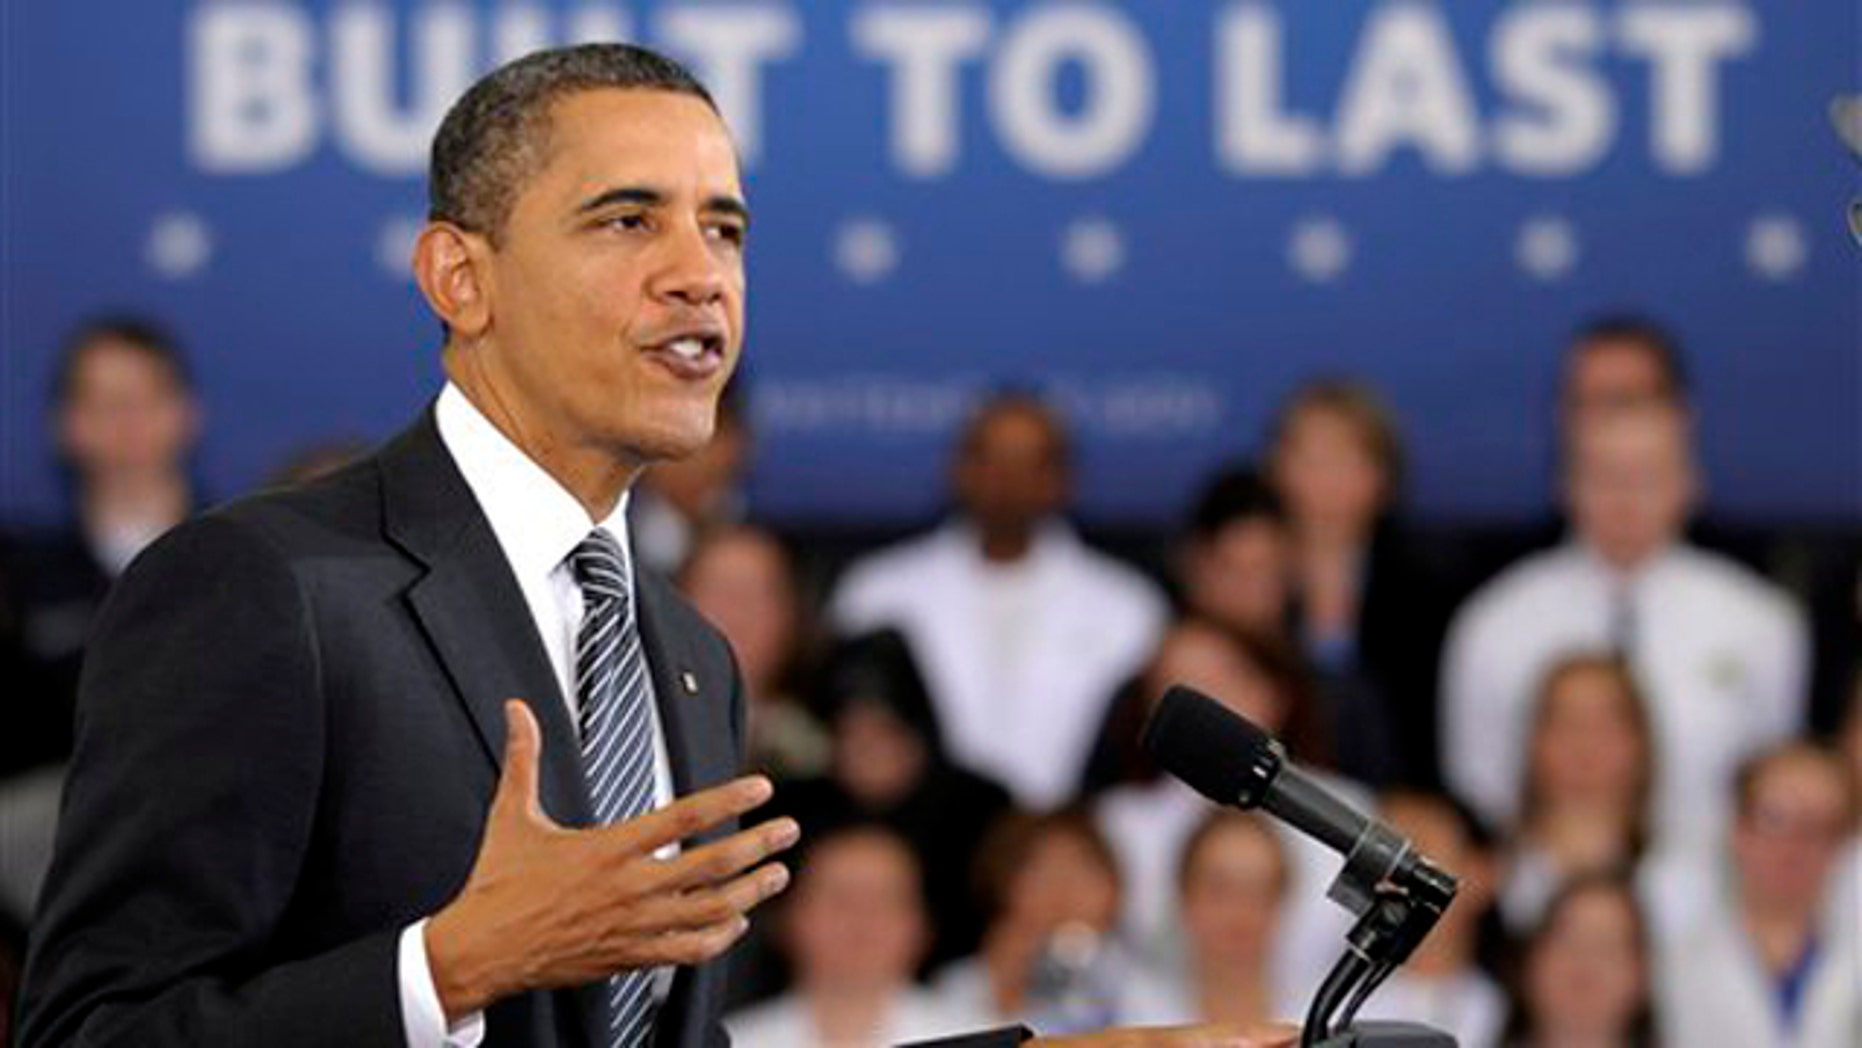 Feb. 13, 2012: President Obama discusses his 2013 budget at Northern Virginia Community College in Annandale, Va.